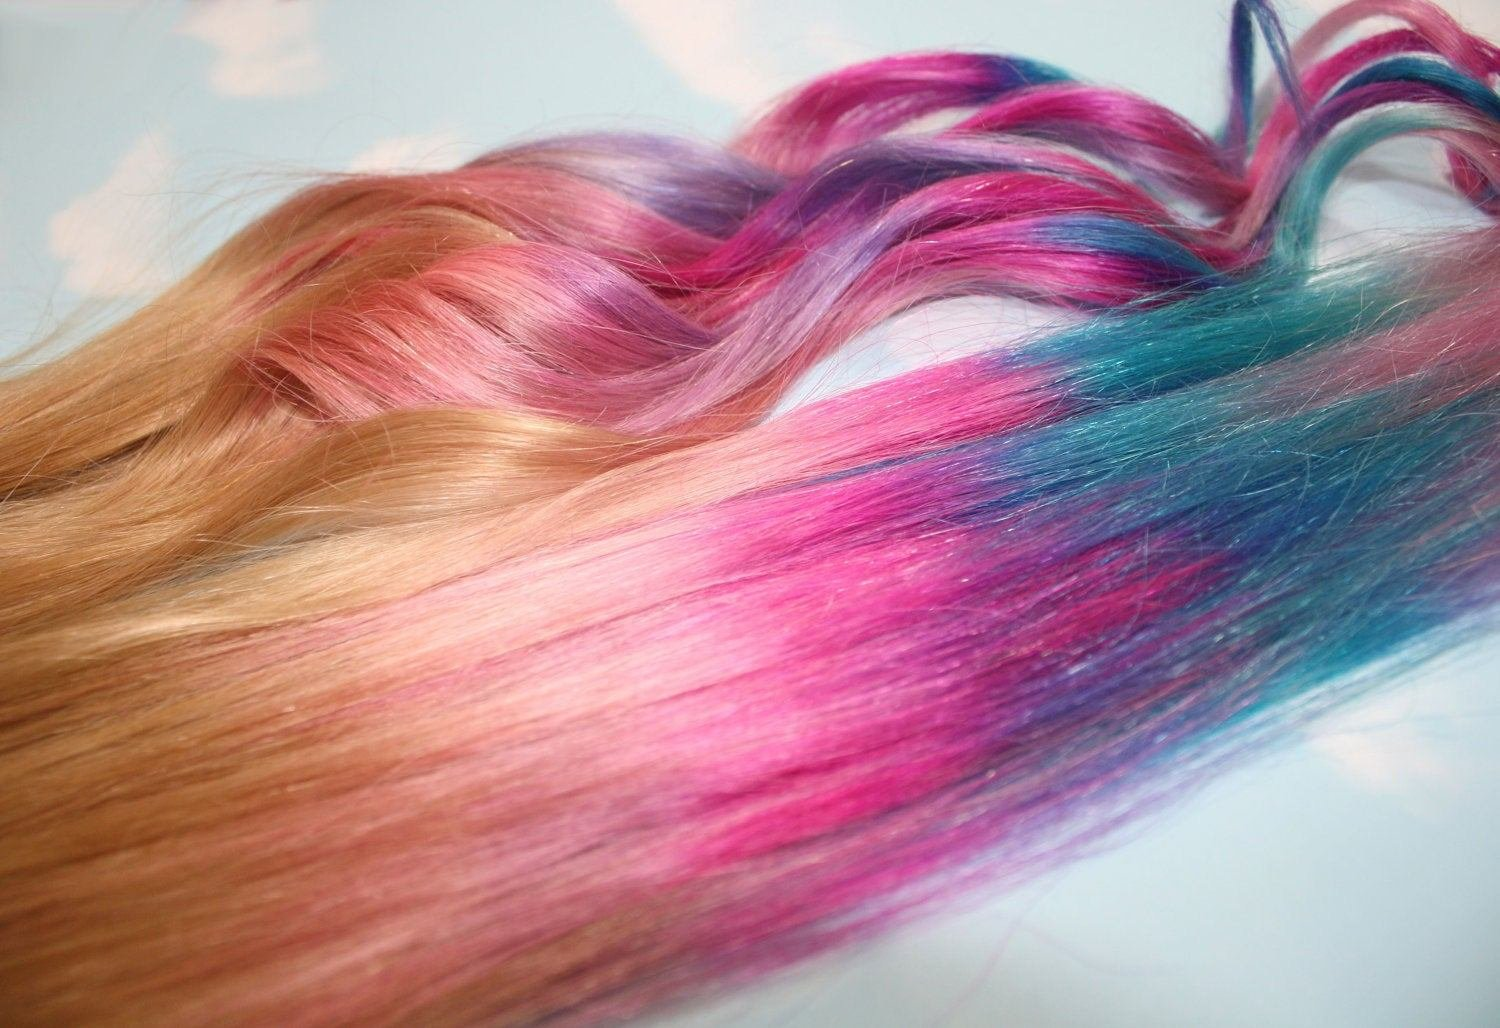 New Handmade Ombre Pastel Tie Dye Tips Human Hair By Cloud9Jewels Ideas With Pictures